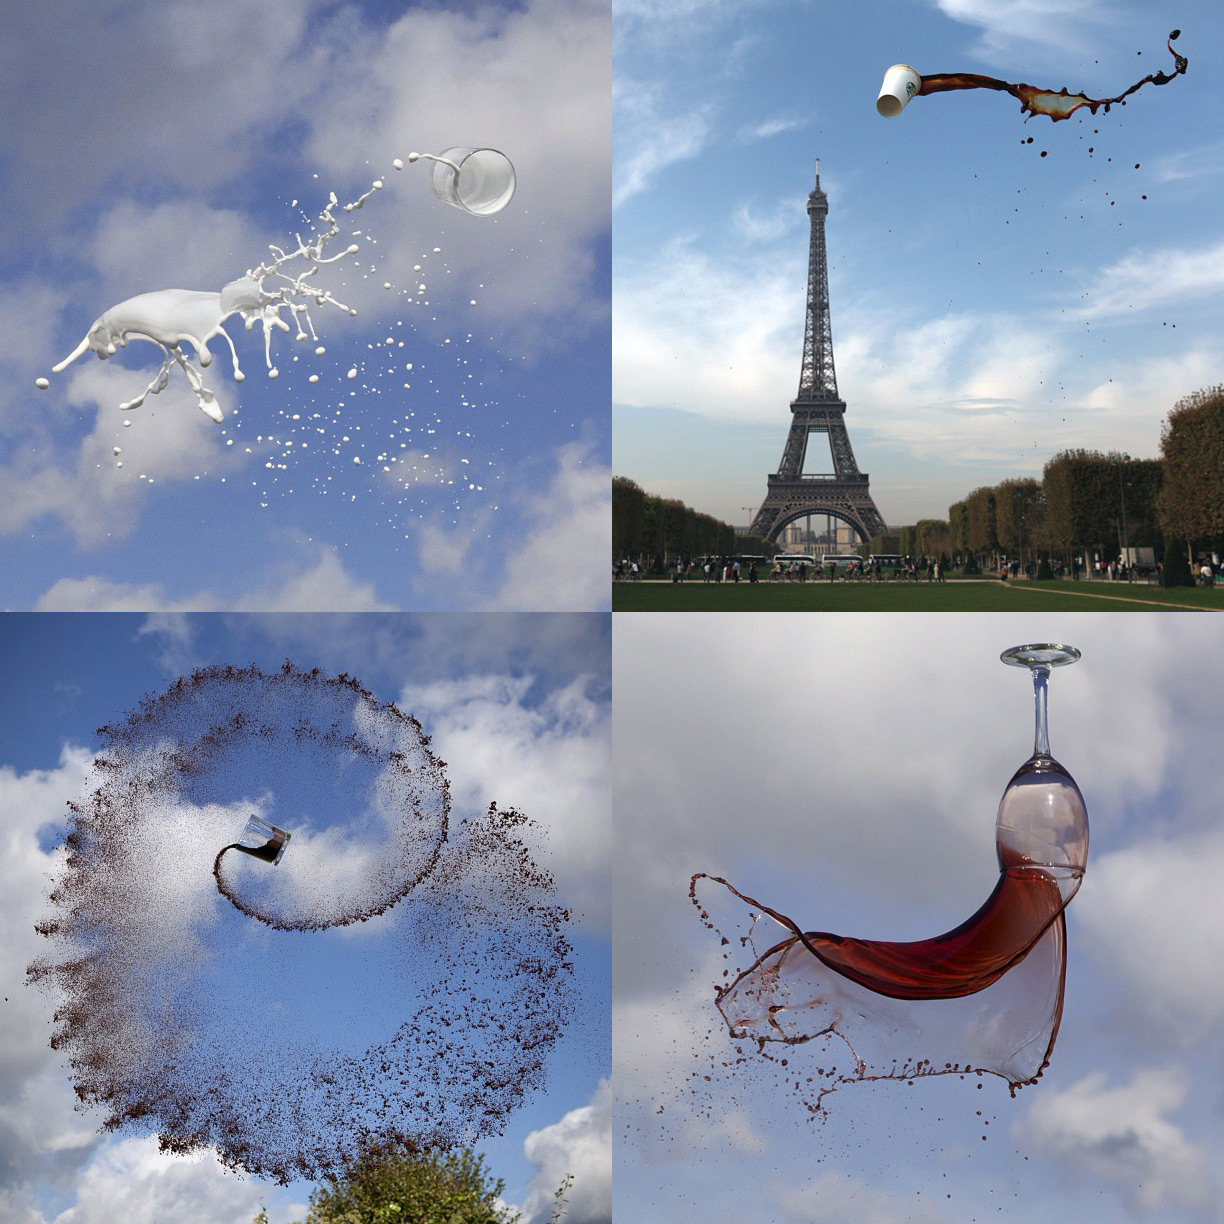 Manon Wethly's Instagram Photos of Airborne Beverages